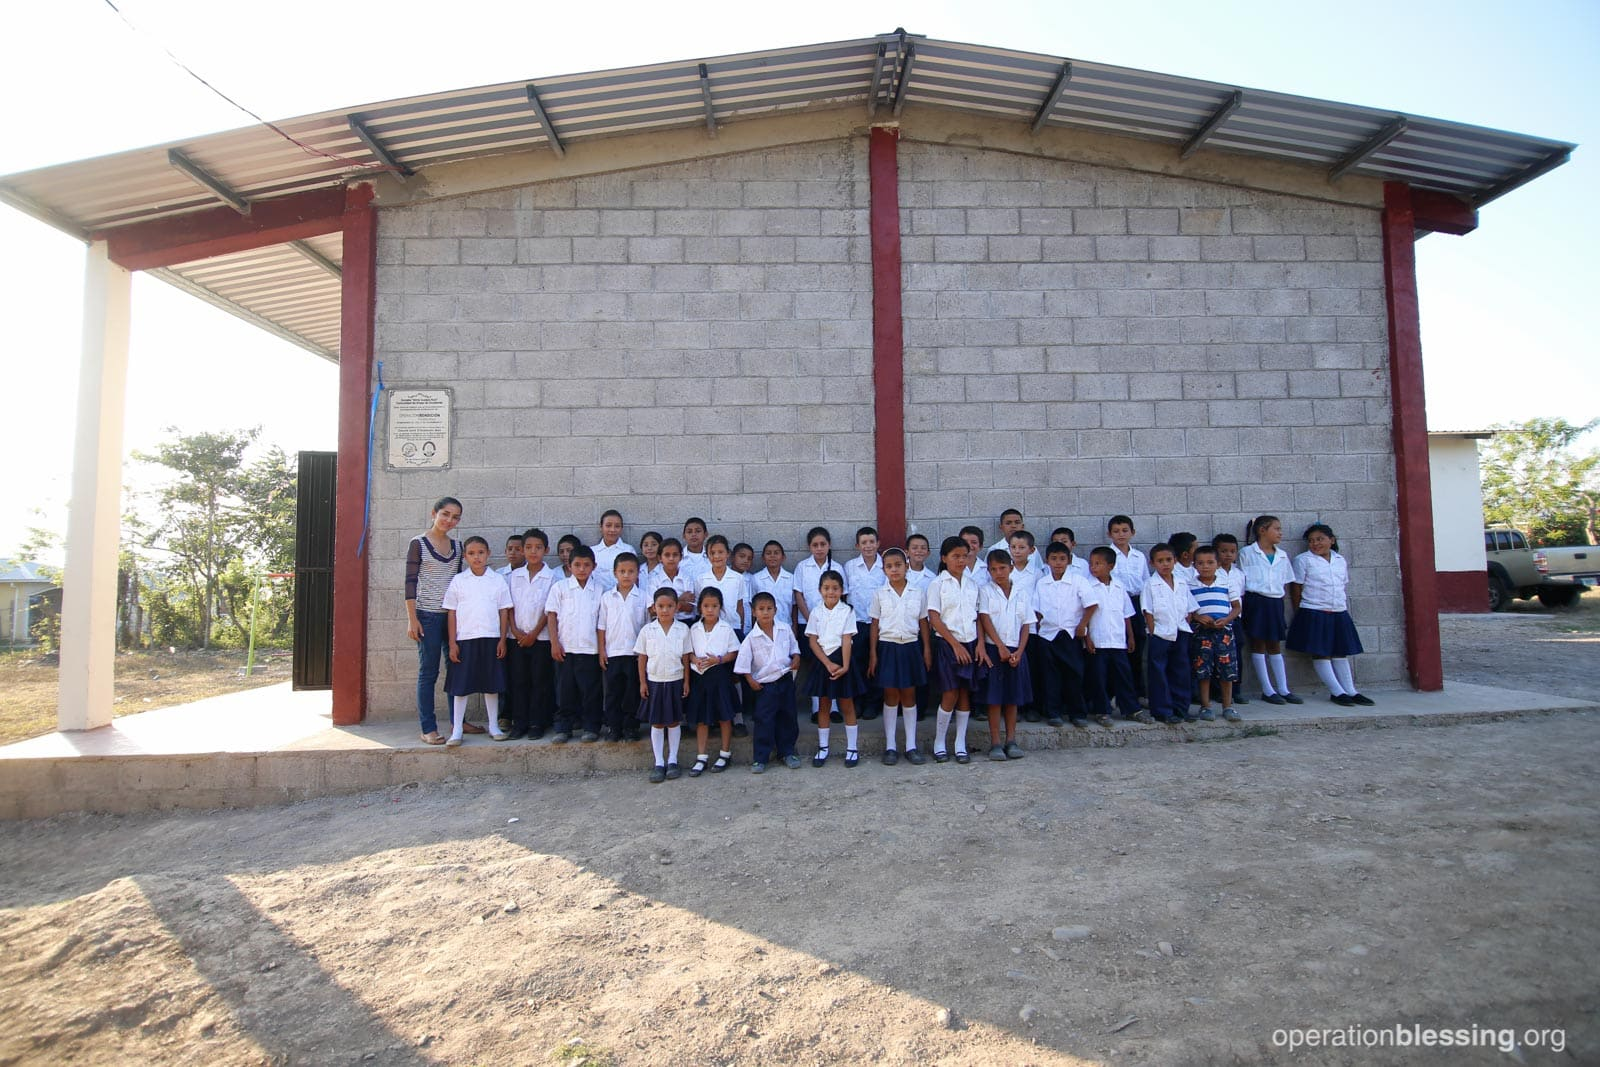 Children of Brisas de Occidente, Santa Barbara, Honduras, stand in front of a new school building from Operation Blessing.